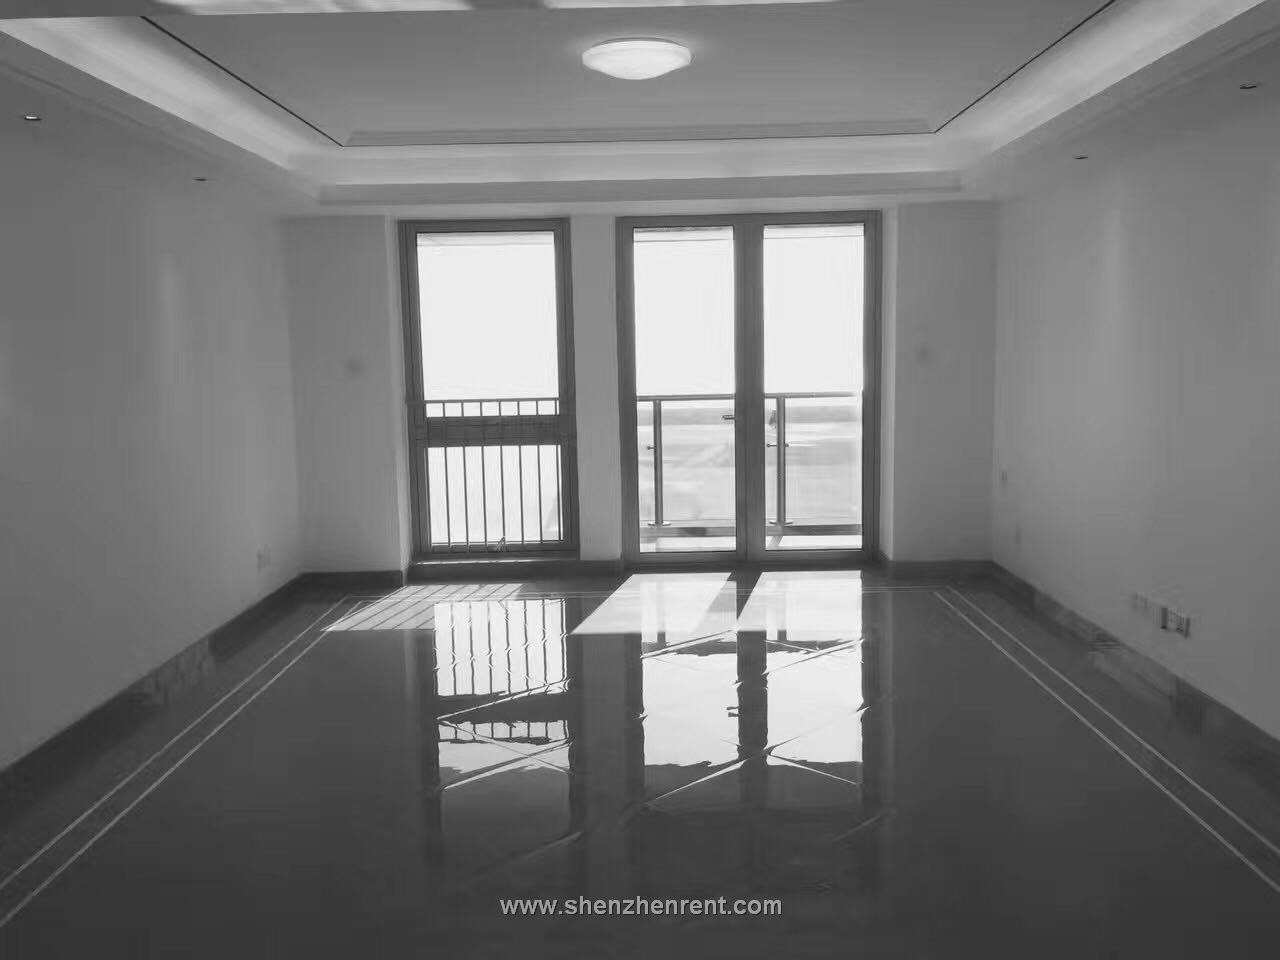 Empty 4 bedrooms apartment in shekou jingshan 9 for rent